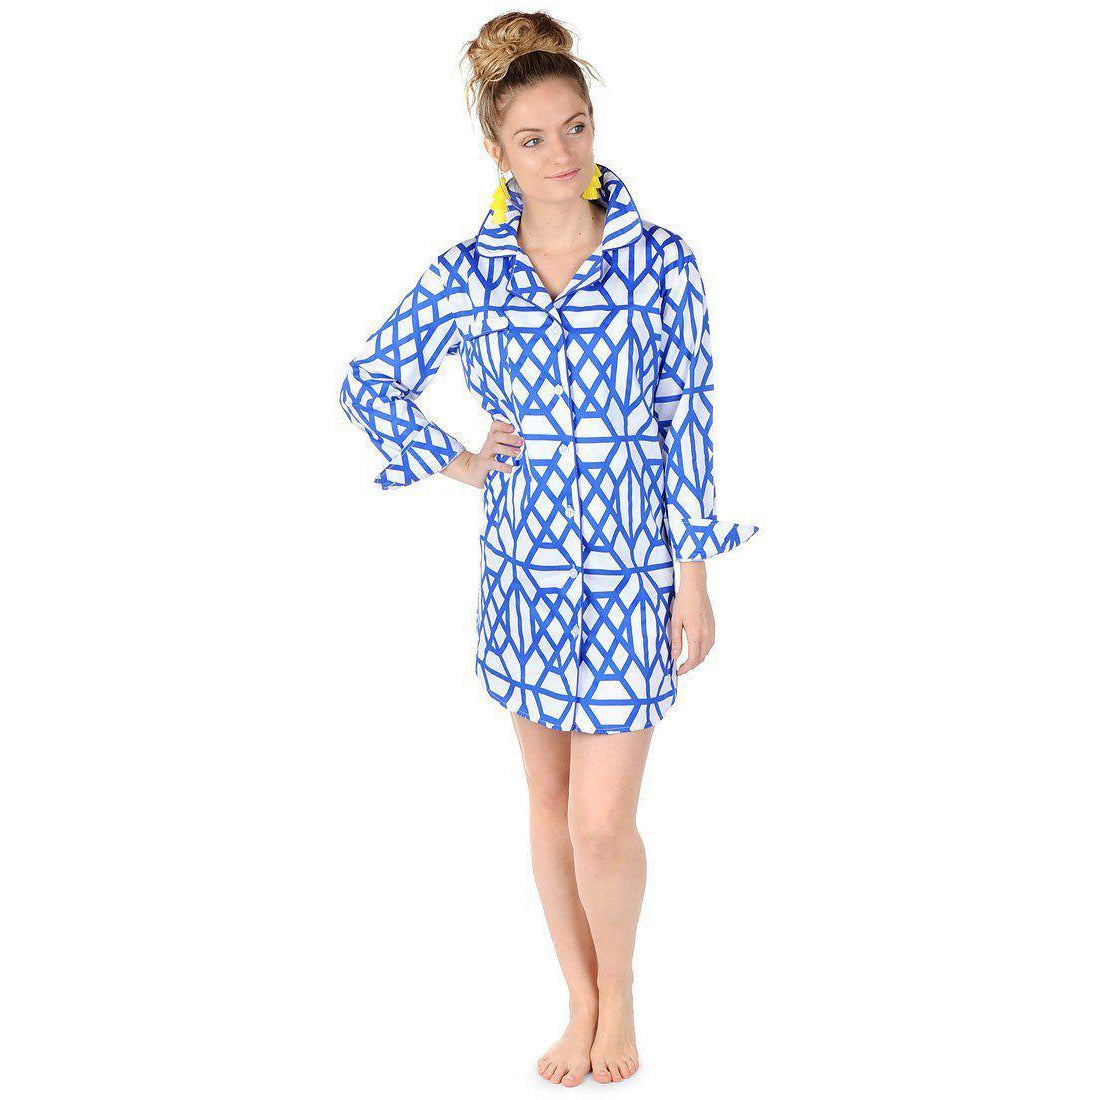 Don't Fret Blue Sateen Sleep Shirt - The Preppy Bunny